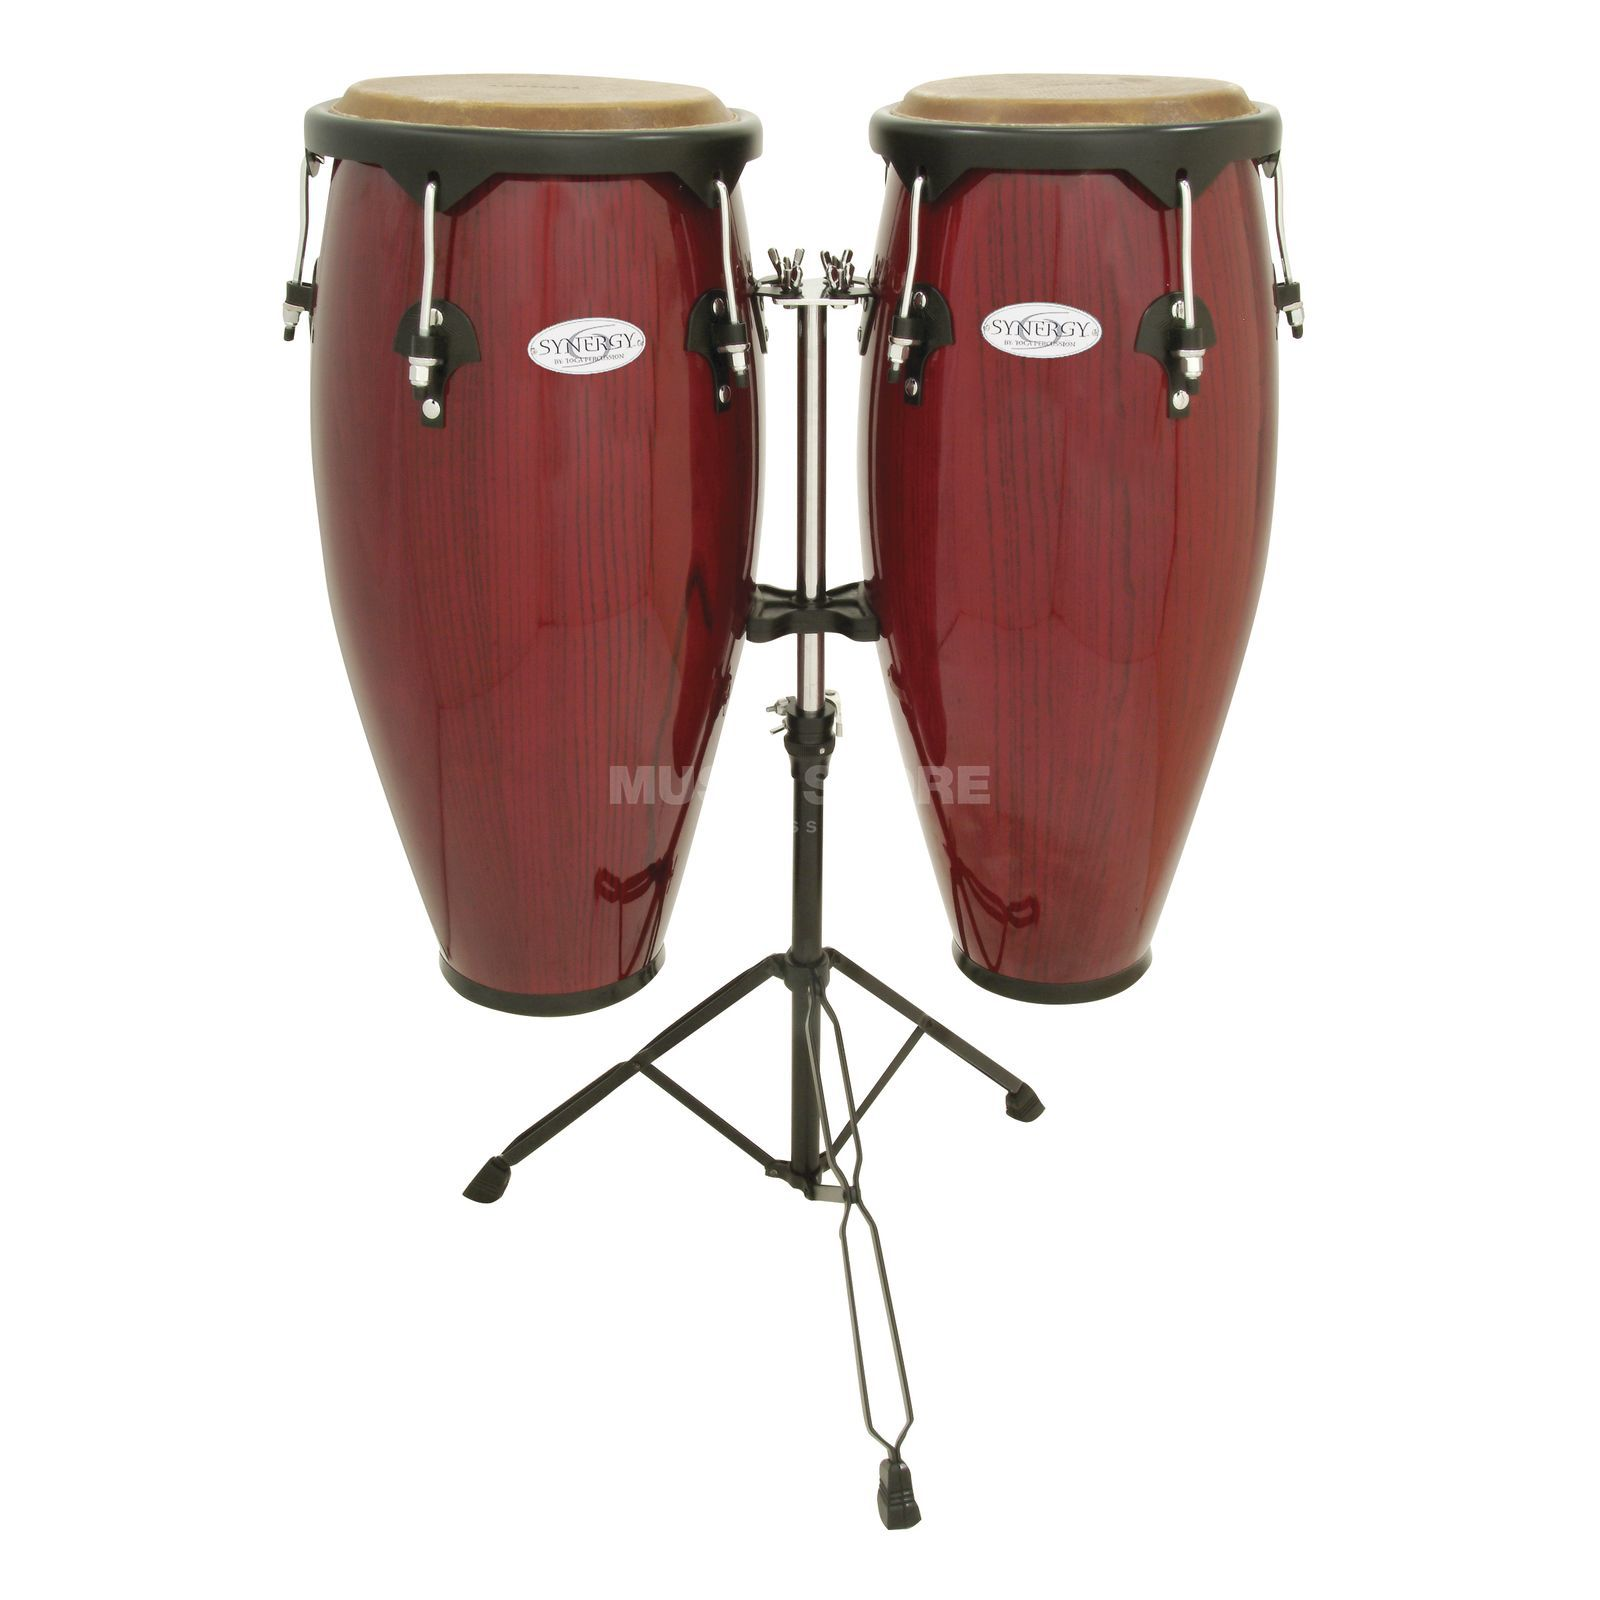 "Toca Percussion Synergy CongaSet 2300RR, 10"" & 11"", Rio Red Produktbillede"